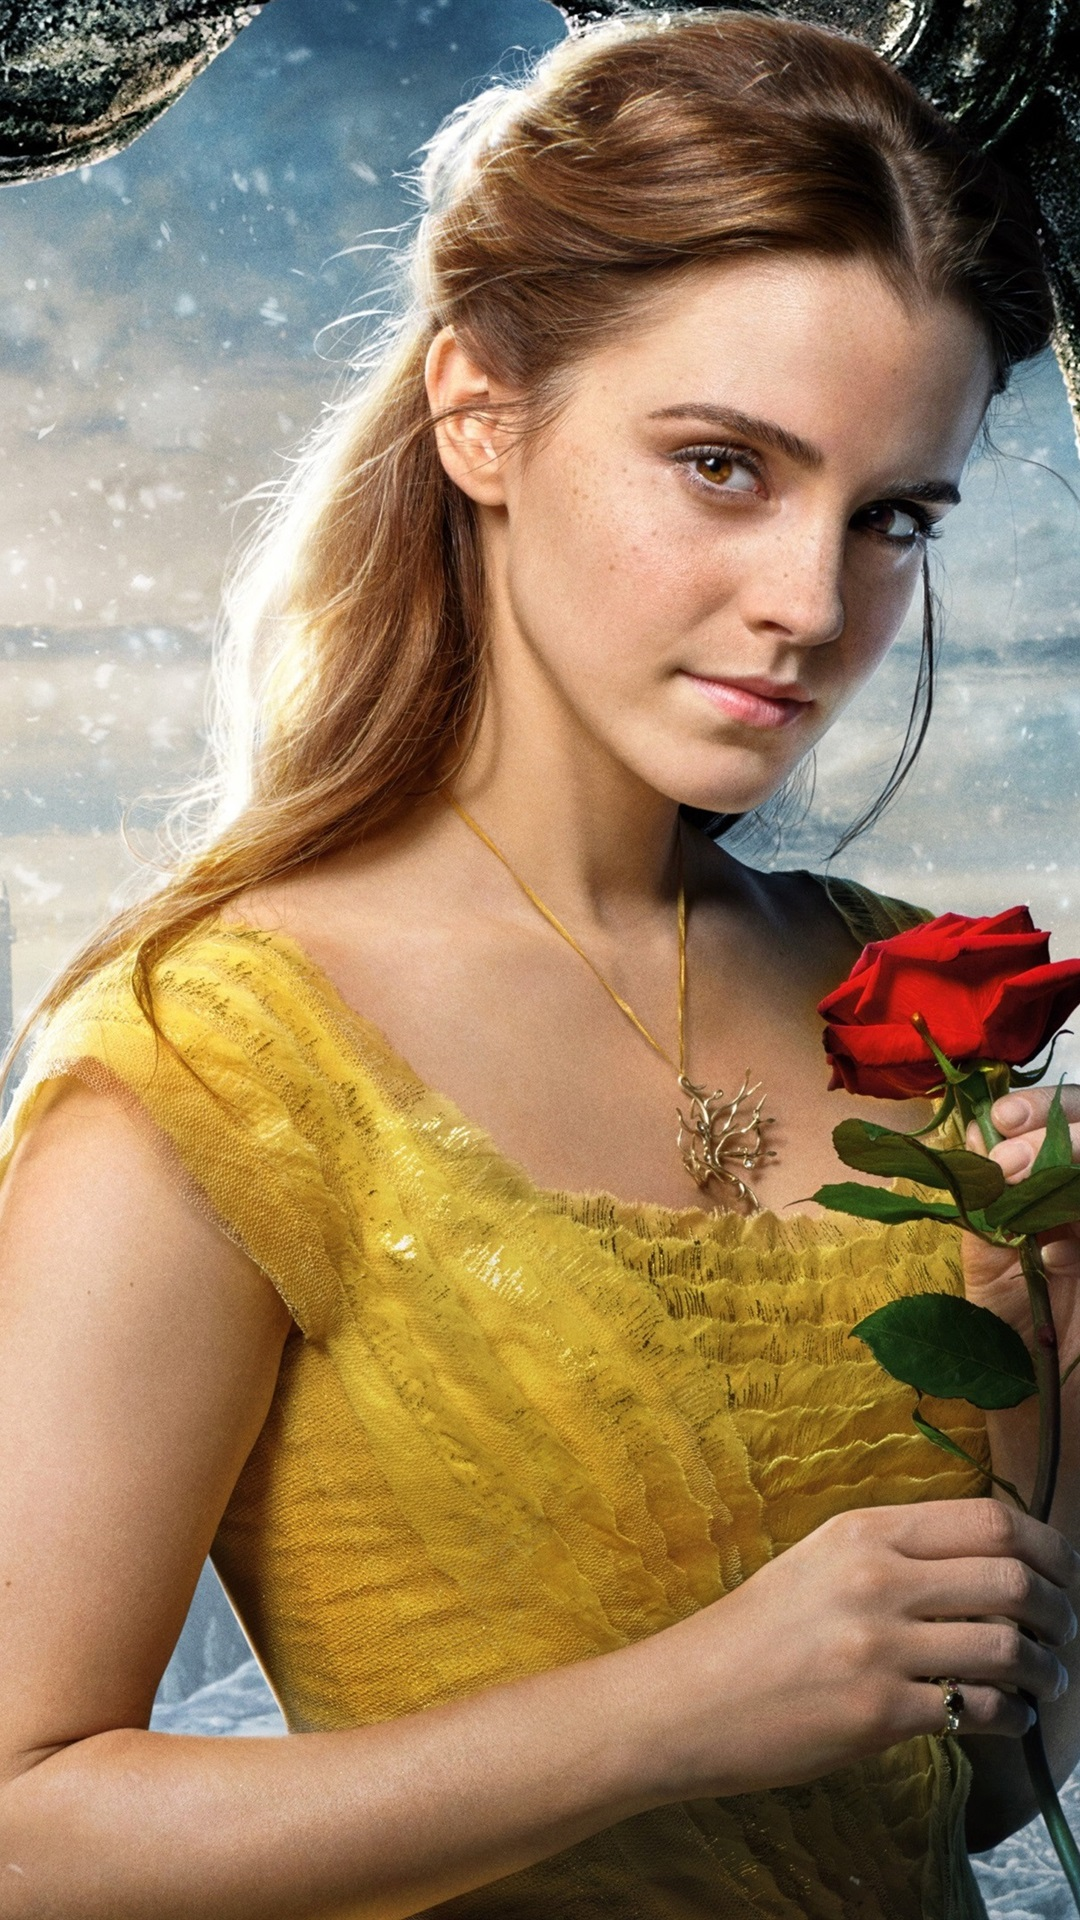 Free Download Beauty And The Beast 2017 Emma Watson